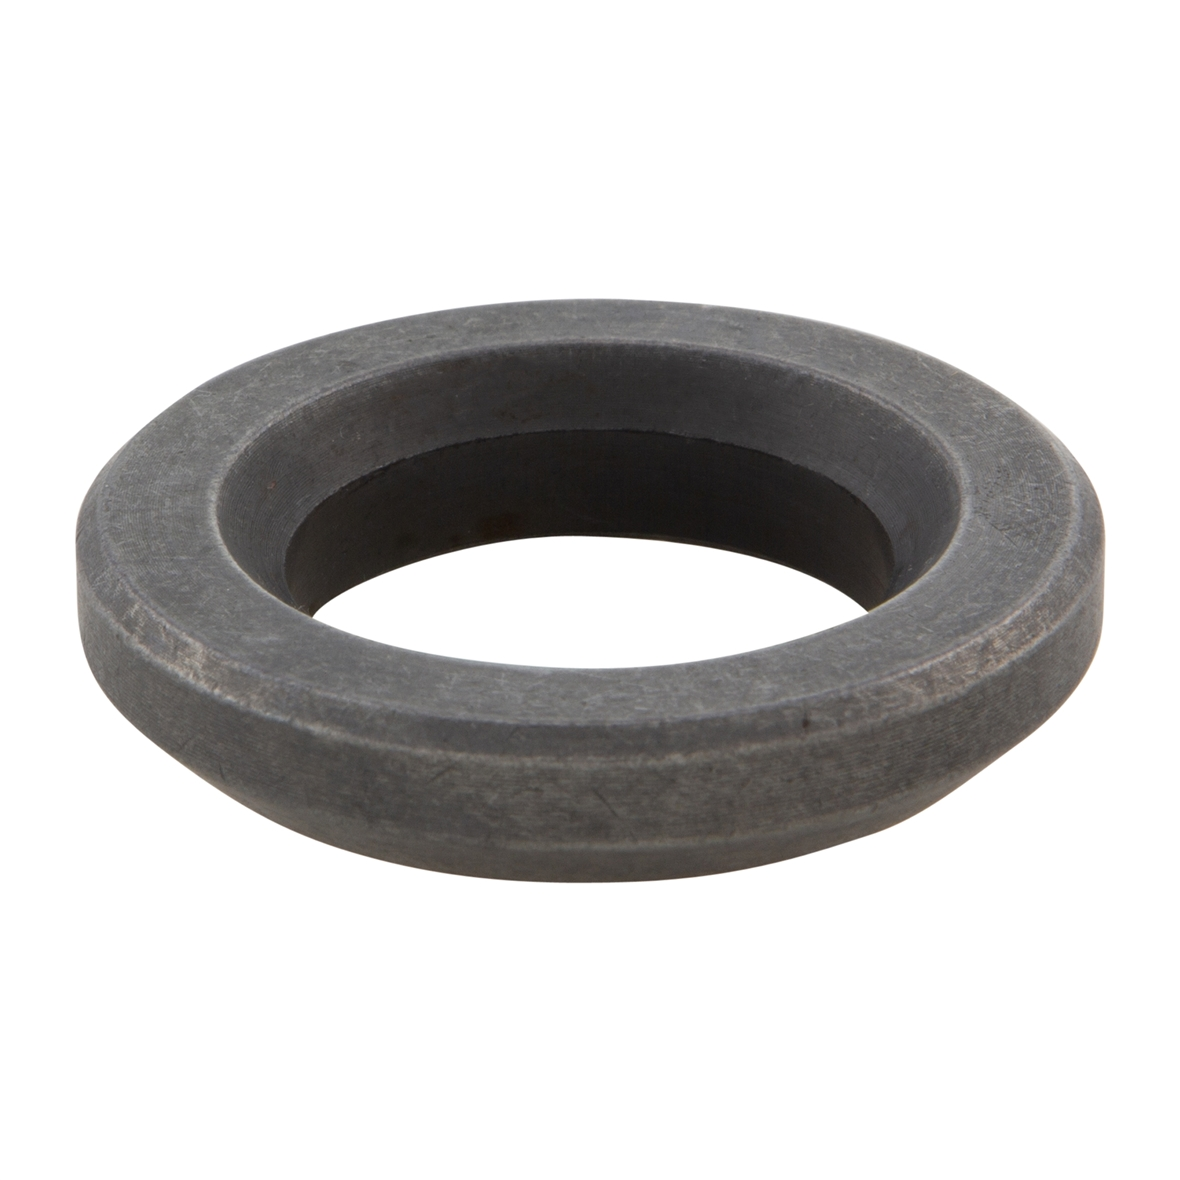 Product Image for 'Distance Washer crankshaft, PIAGGIOTitle'